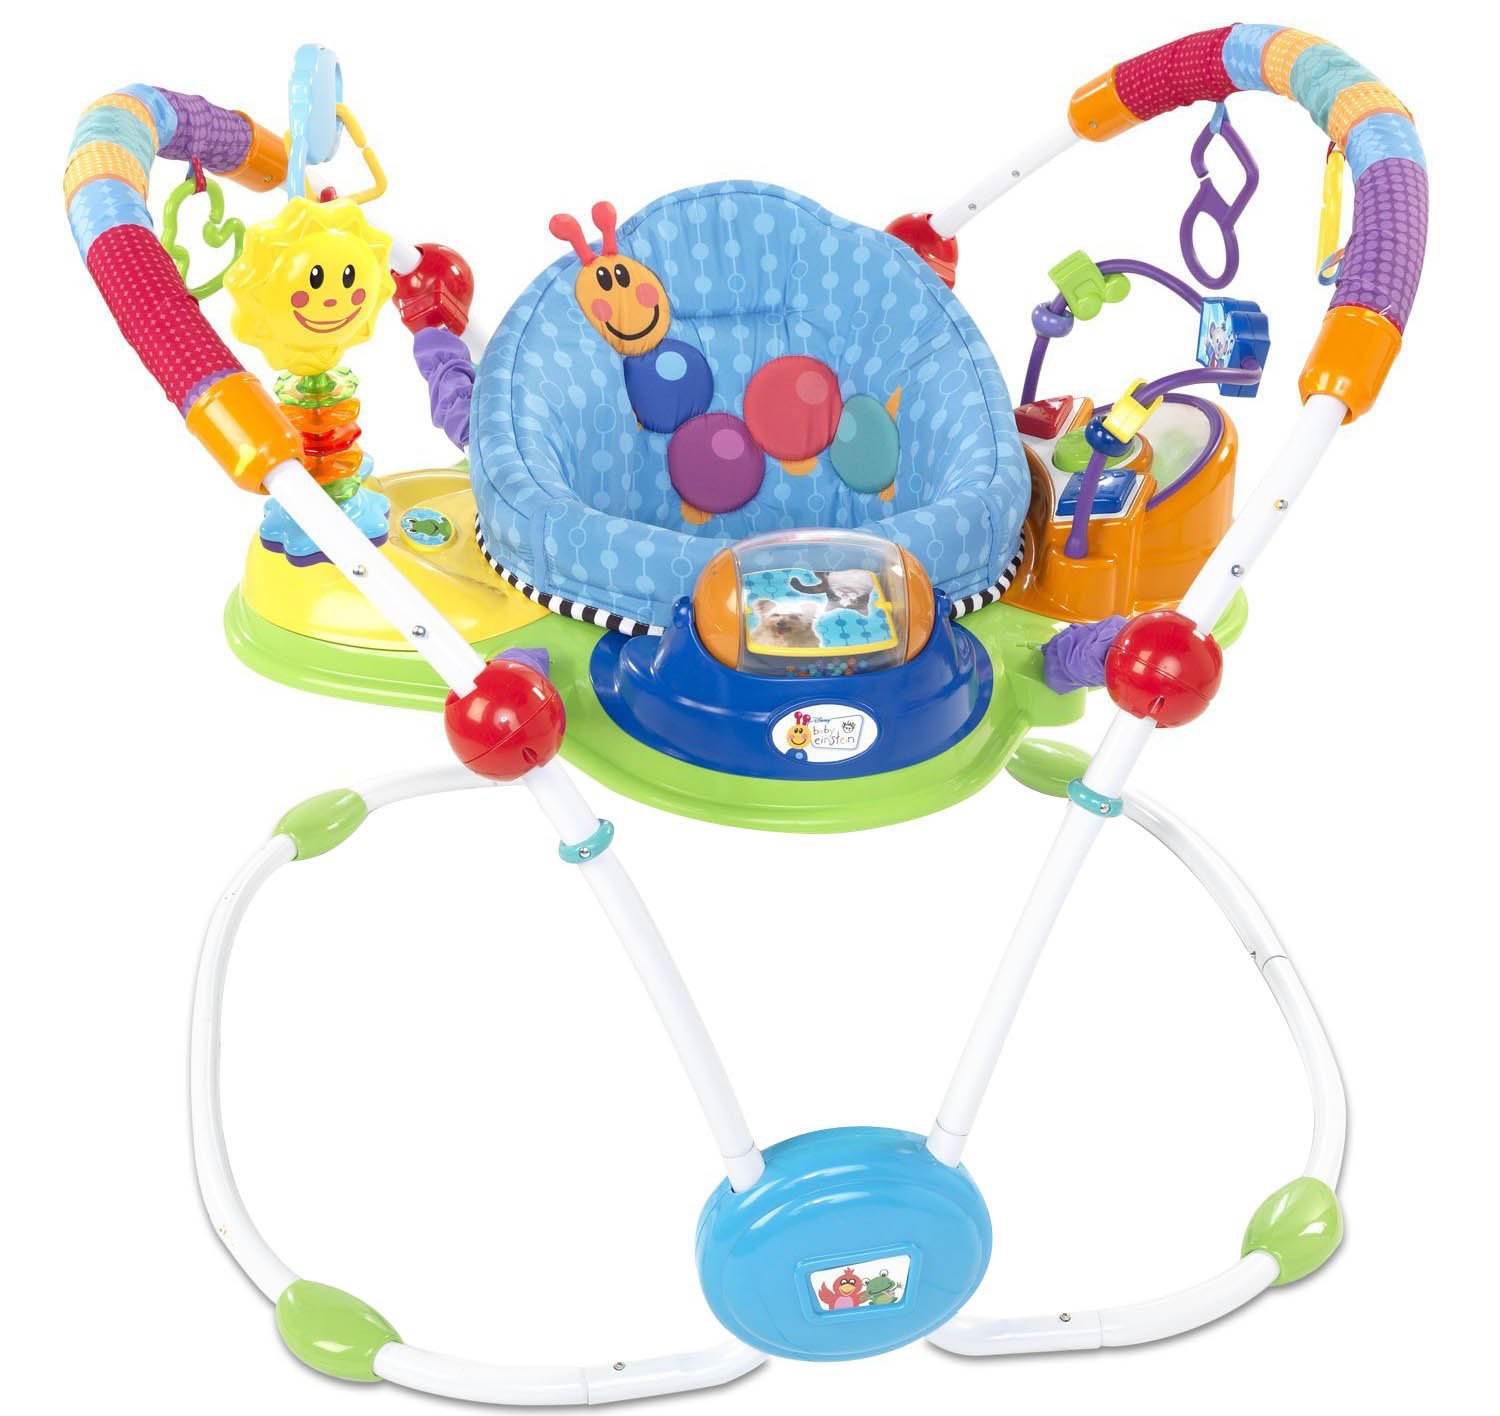 Baby Einstein Musical Motion Activity Jumper